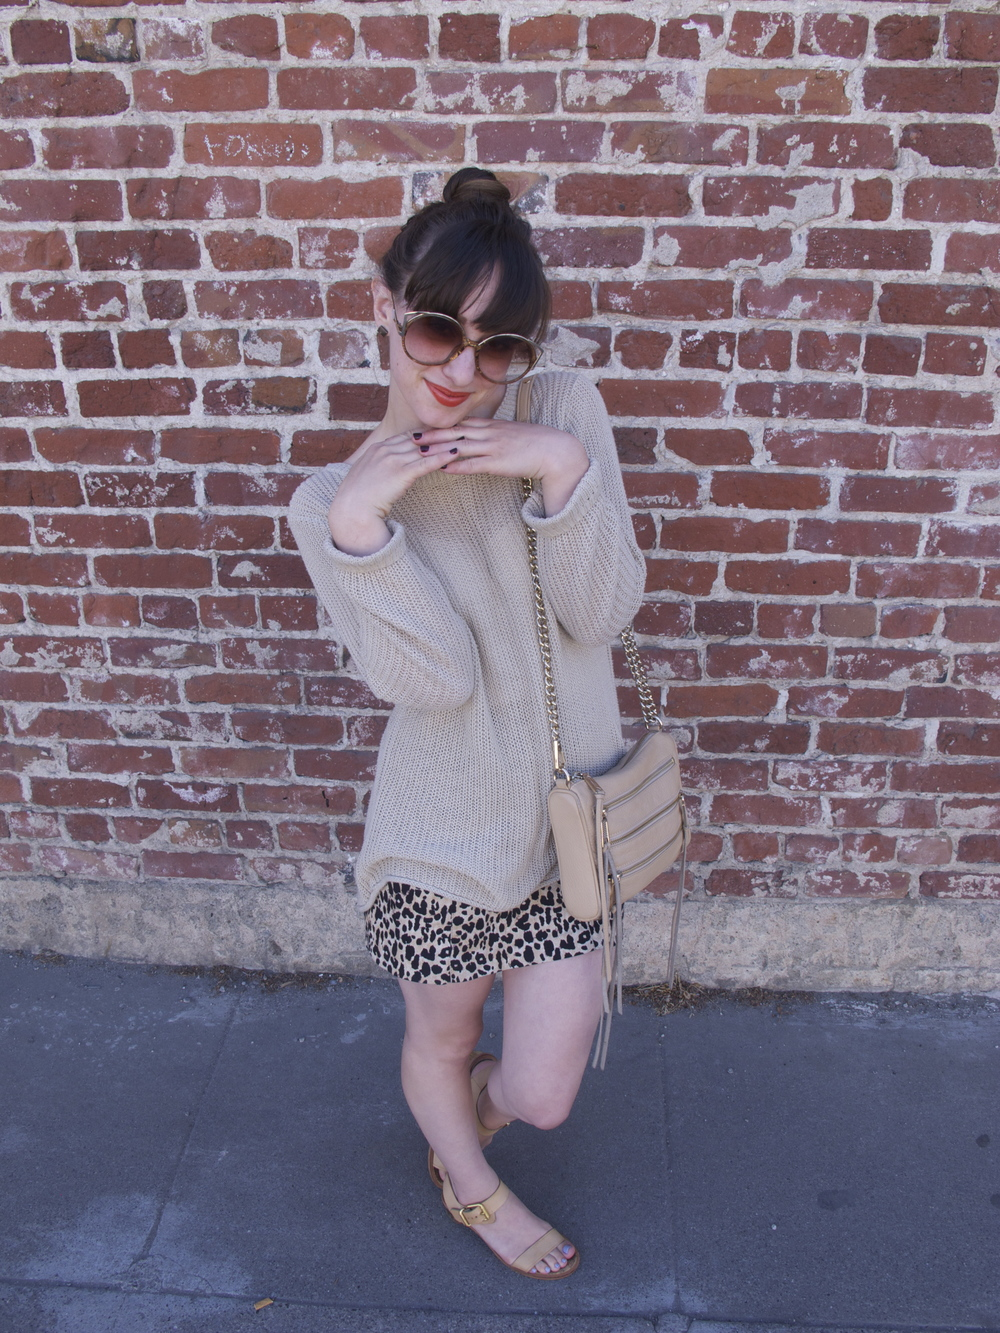 Sweater: Joie, Skirt: Forever21, Sandals: Sam Edelman, 5-Zip Mini Bag: Rebecca Minkoff, Sunglasses: Christian Dior (vintage)